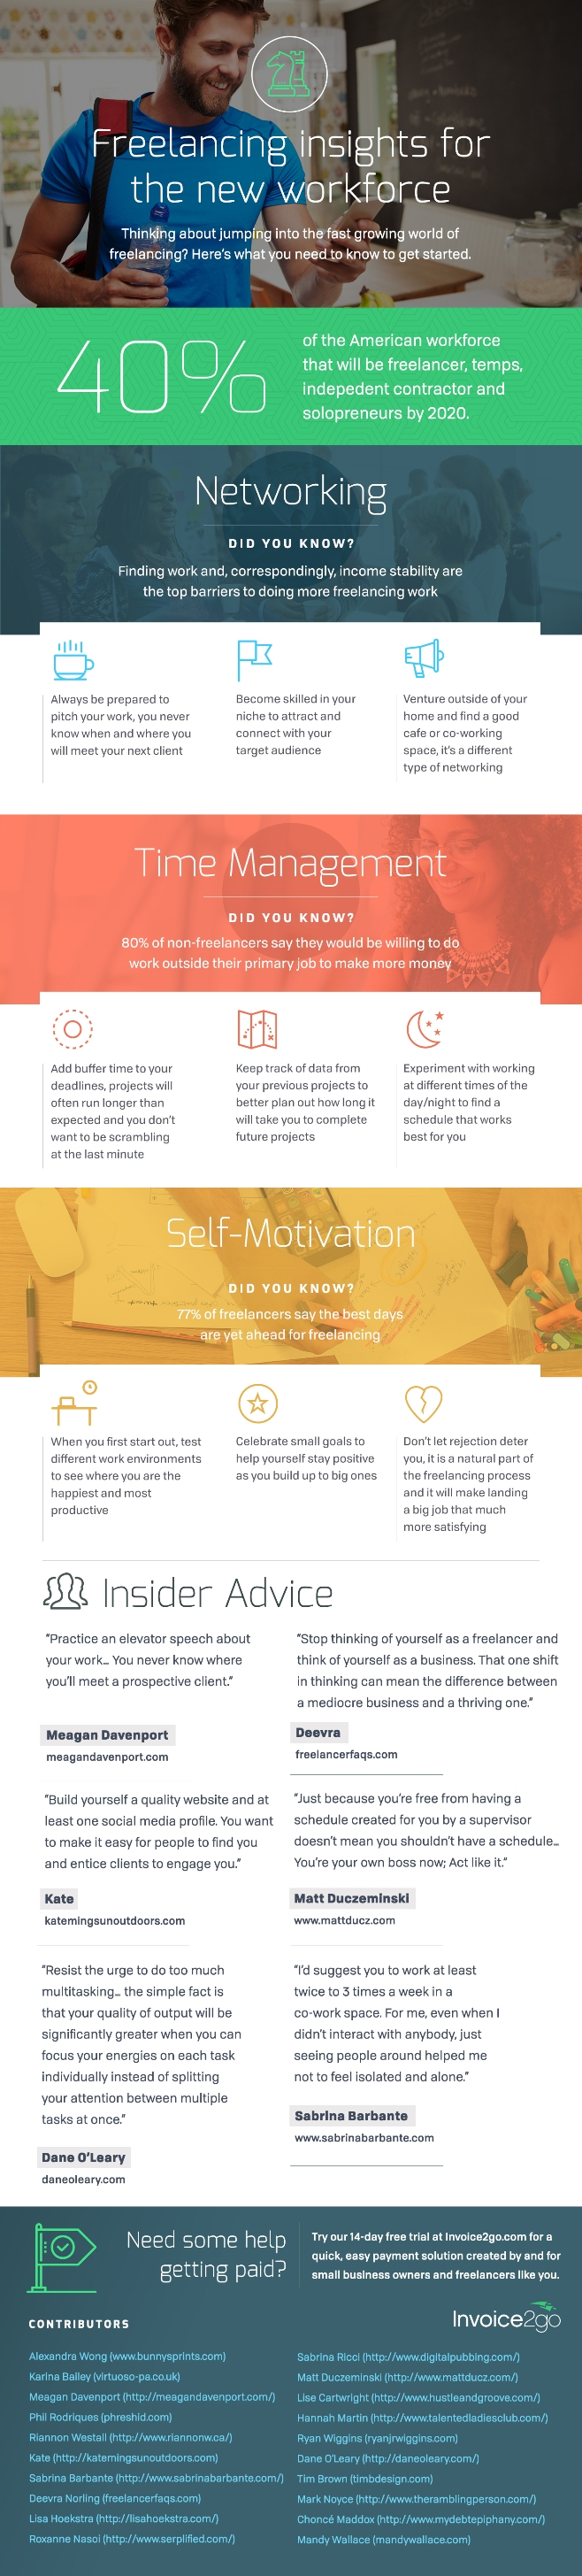 freelancing-insights-imfographic